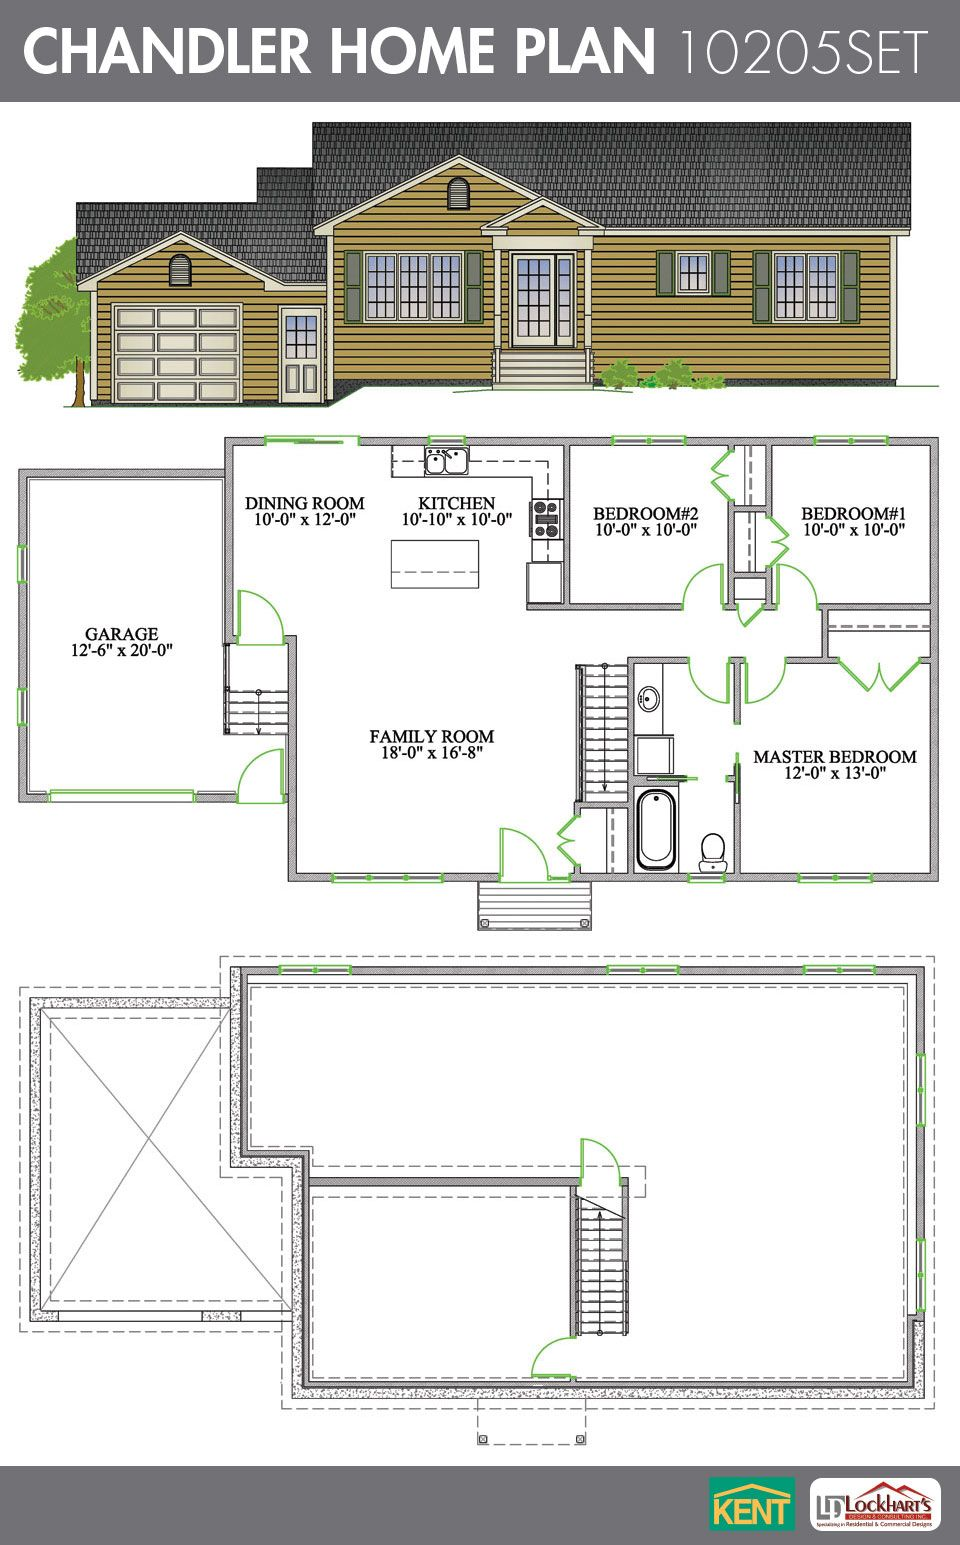 Chandler 3 Bedroom 1 Bathroom Home Plan Features Open